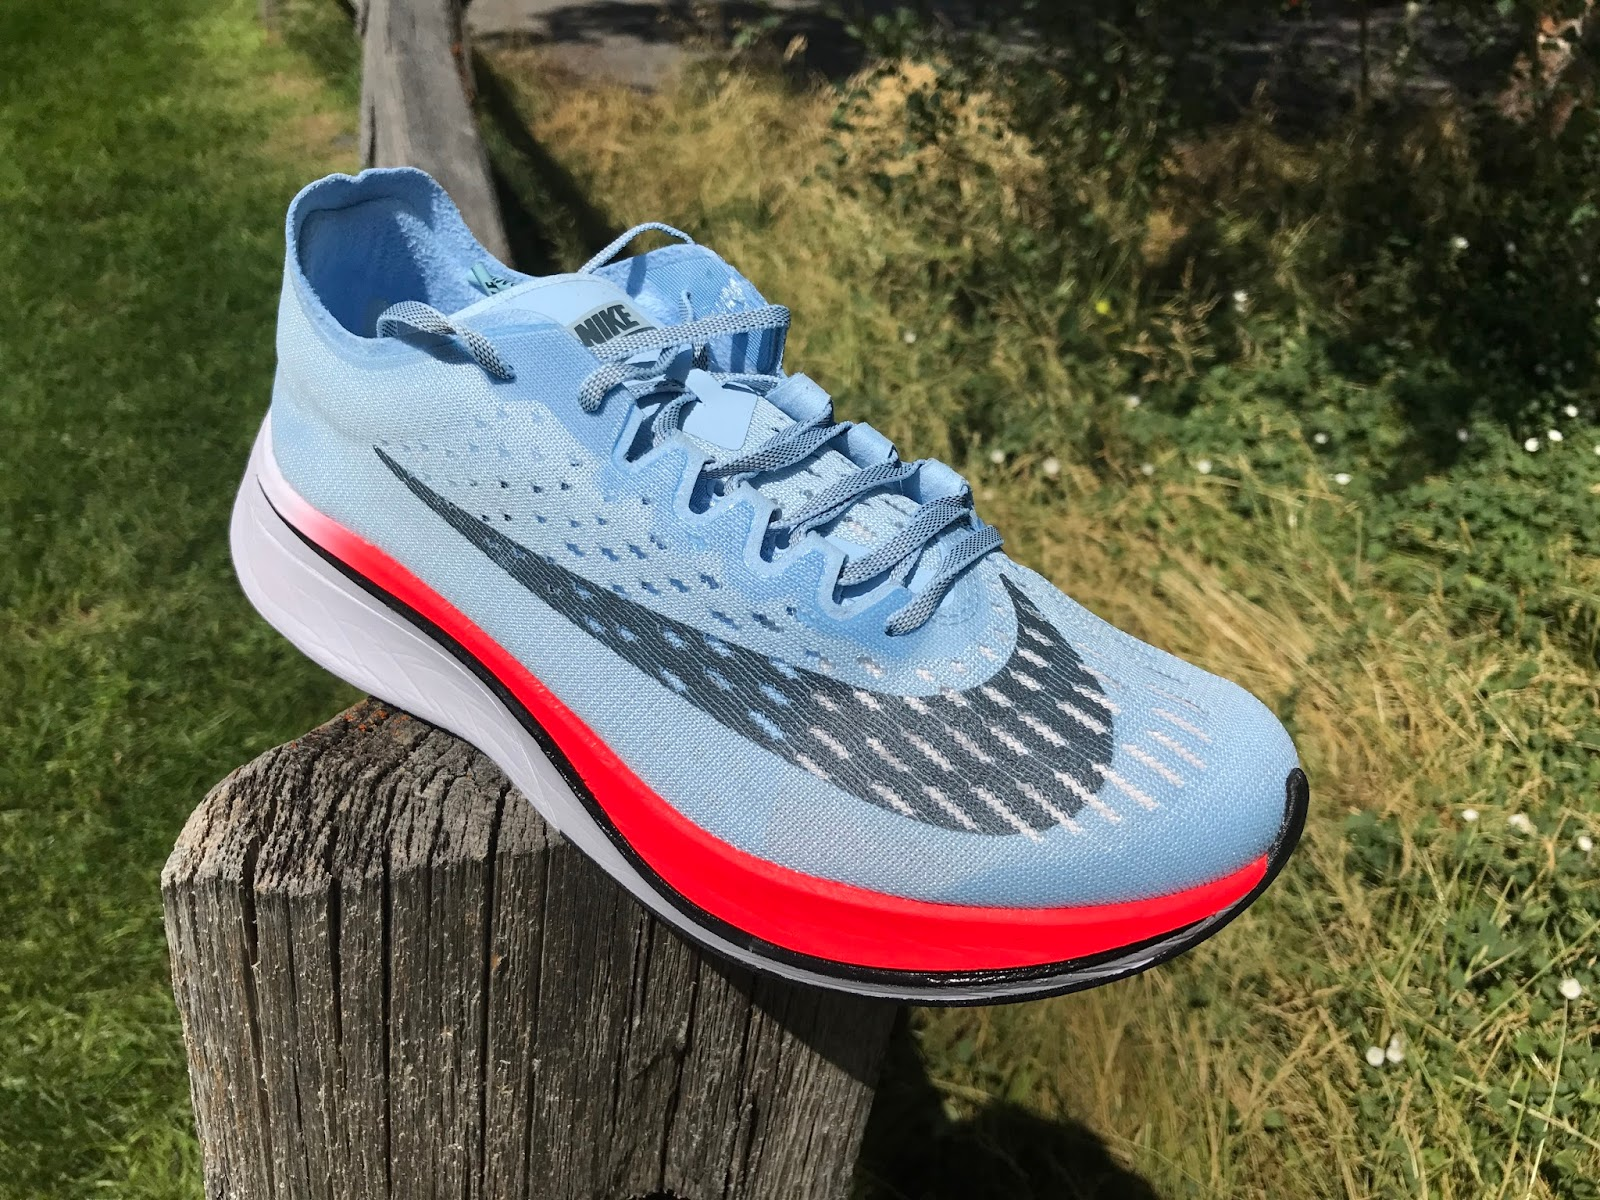 b847af177b22 Road Trail Run  Nike Zoom Vaporfly 4% Detailed Breakdown Run and ...